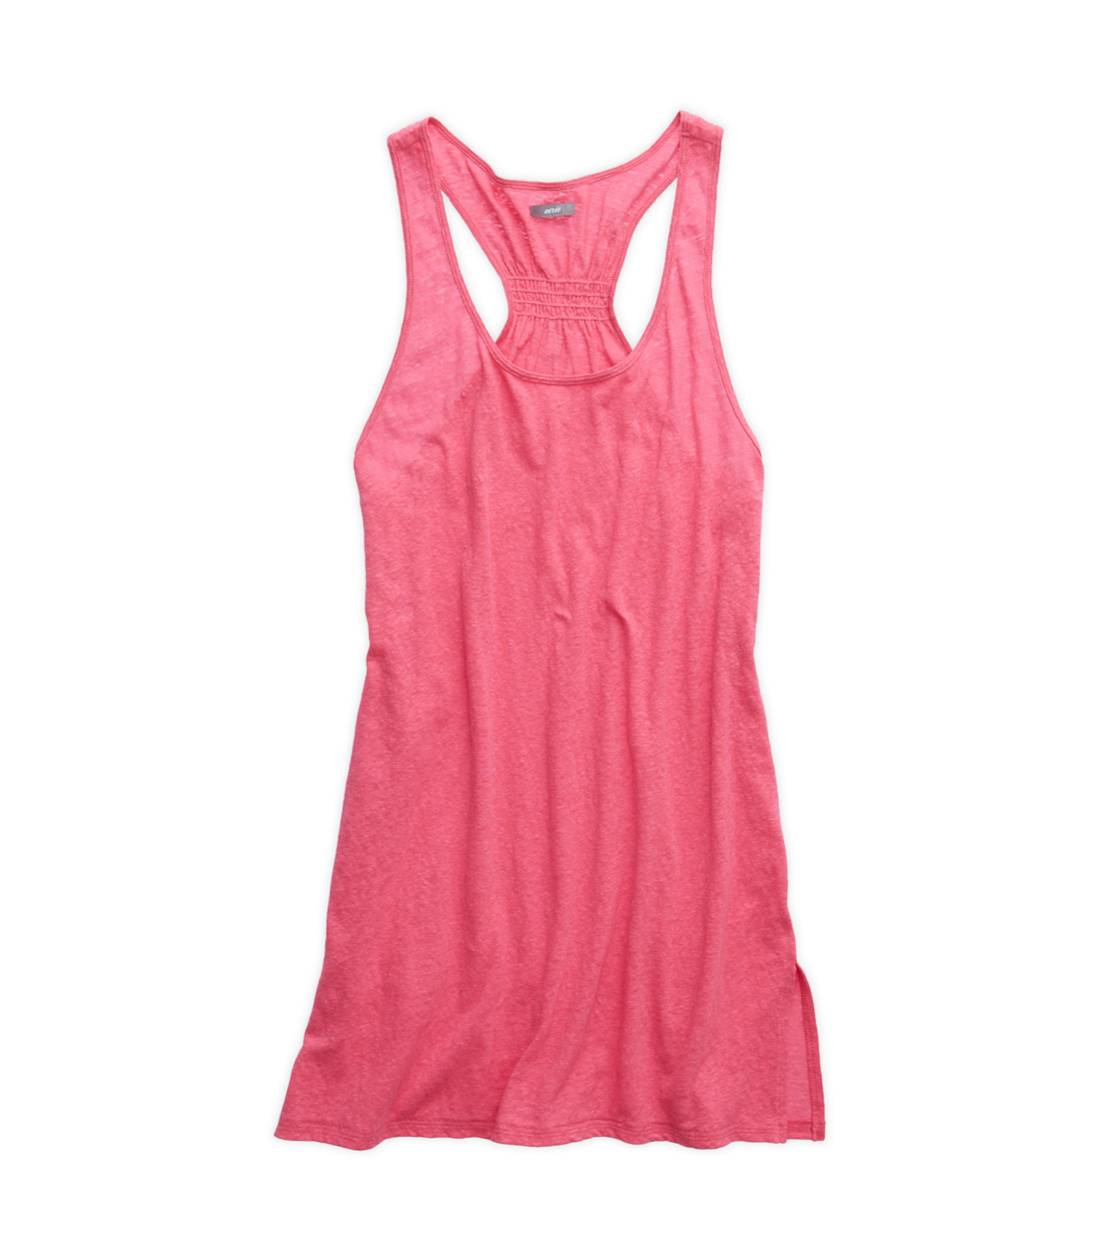 Sweetheart Aerie Racerback Tank Dress